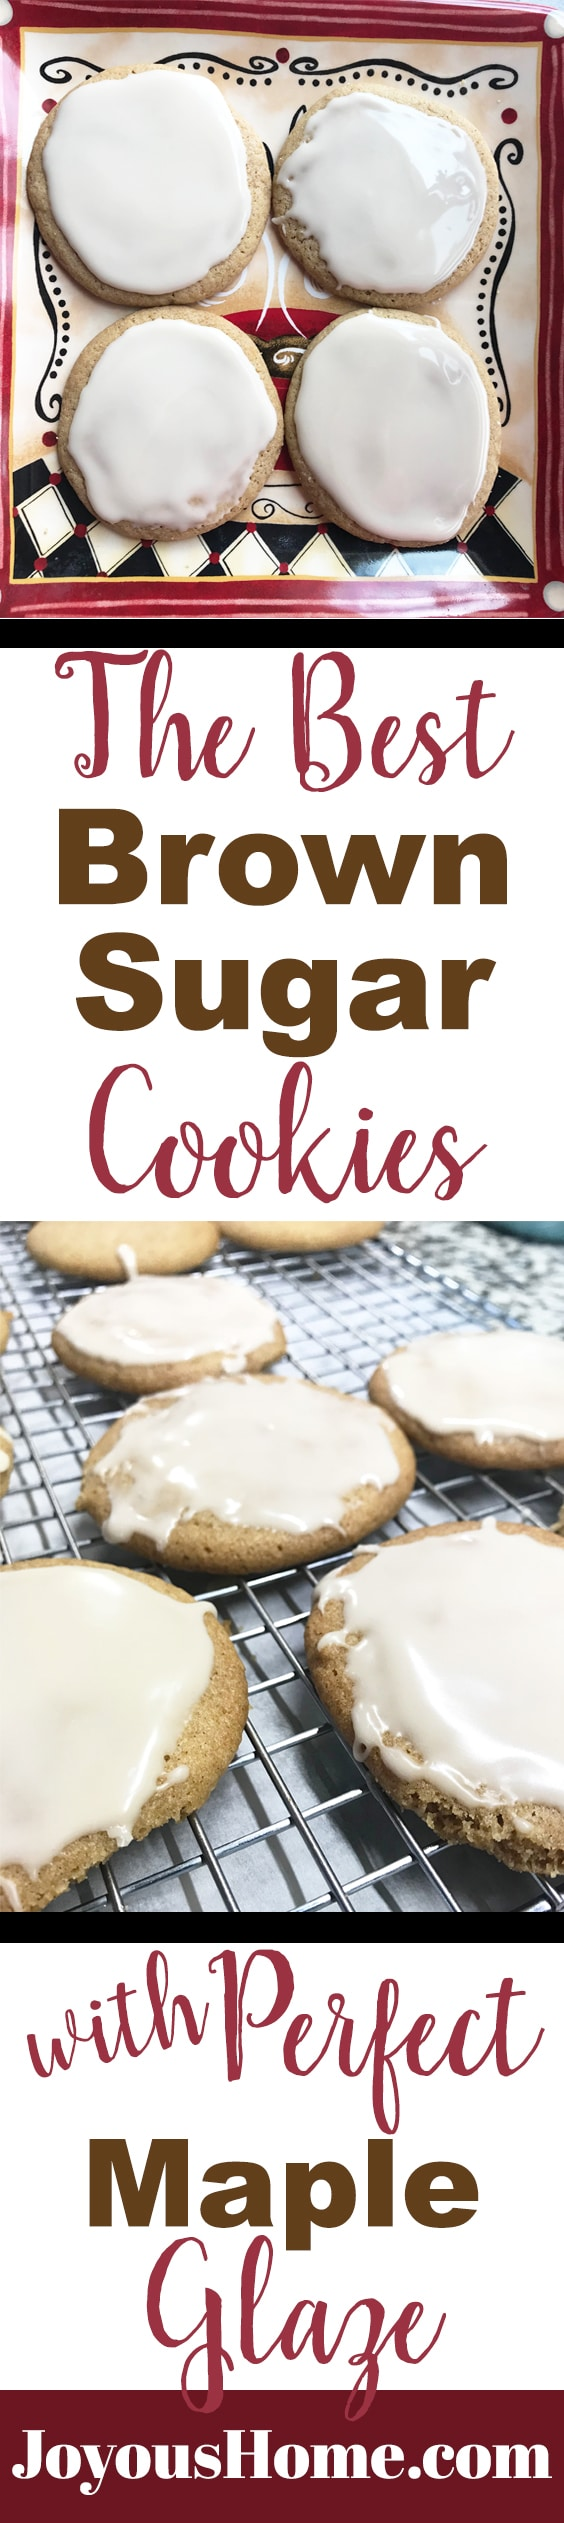 Best Brown Sugar Cookies Perfect Maple Glaze